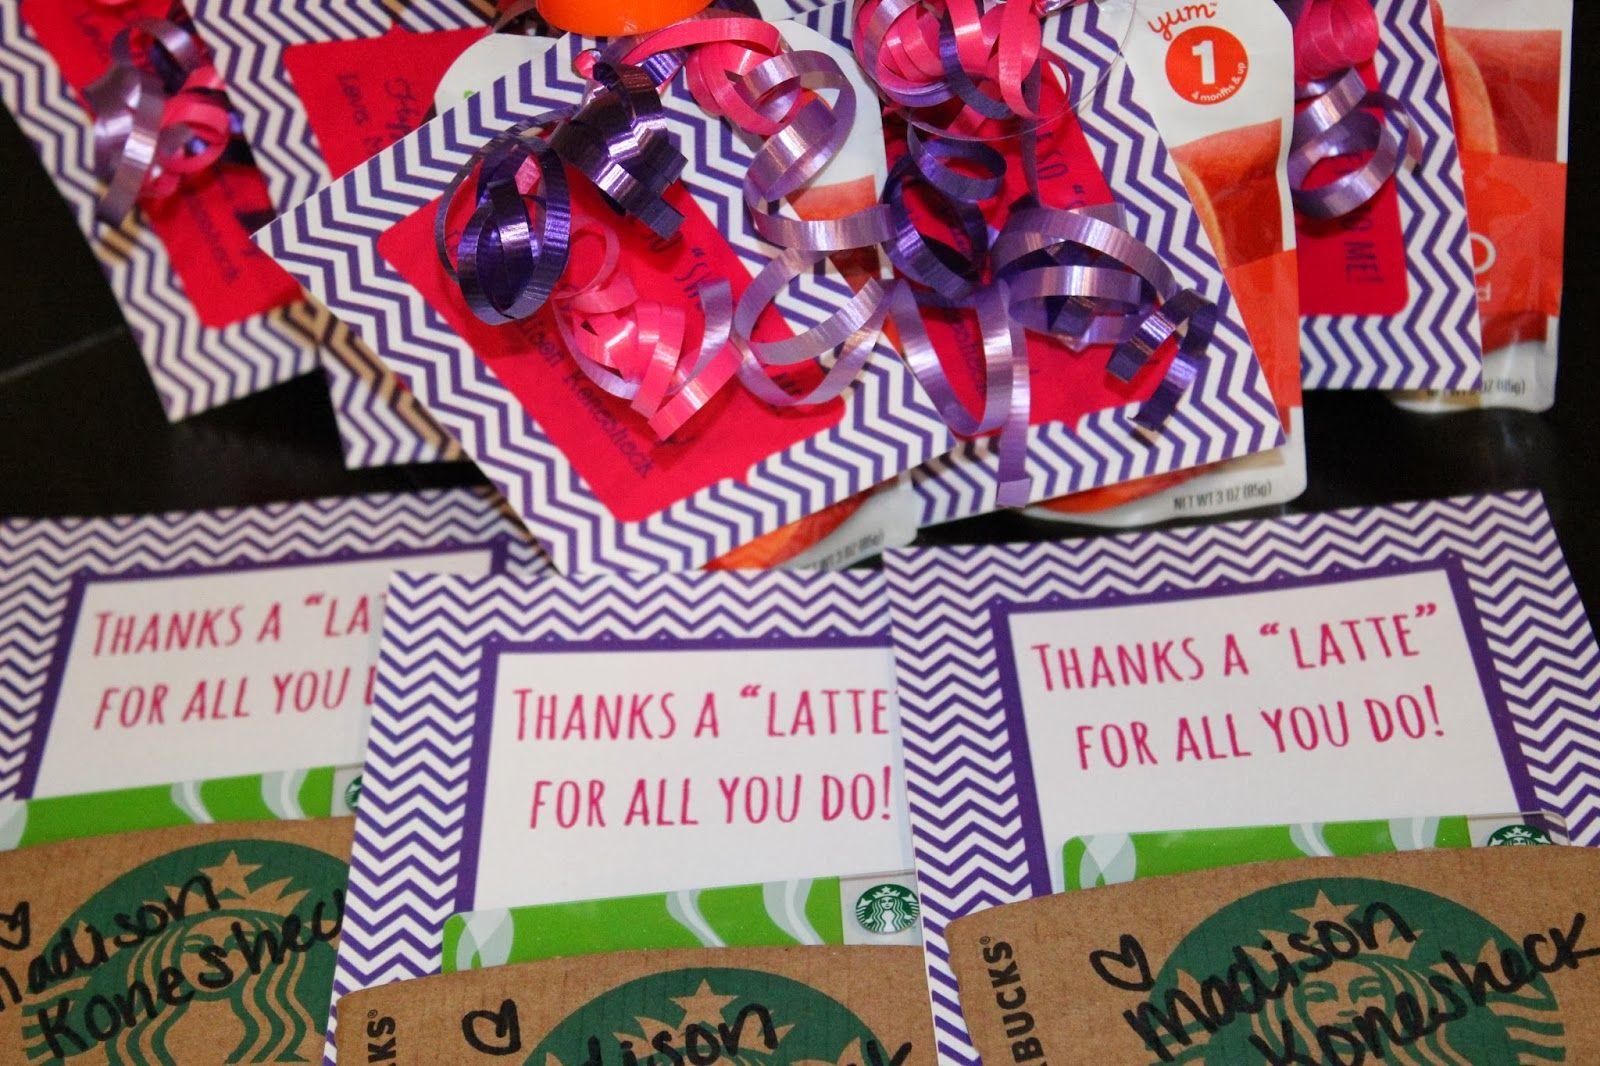 """Thanks a """"latte"""" for all you do Valentine's Starbucks card holders"""